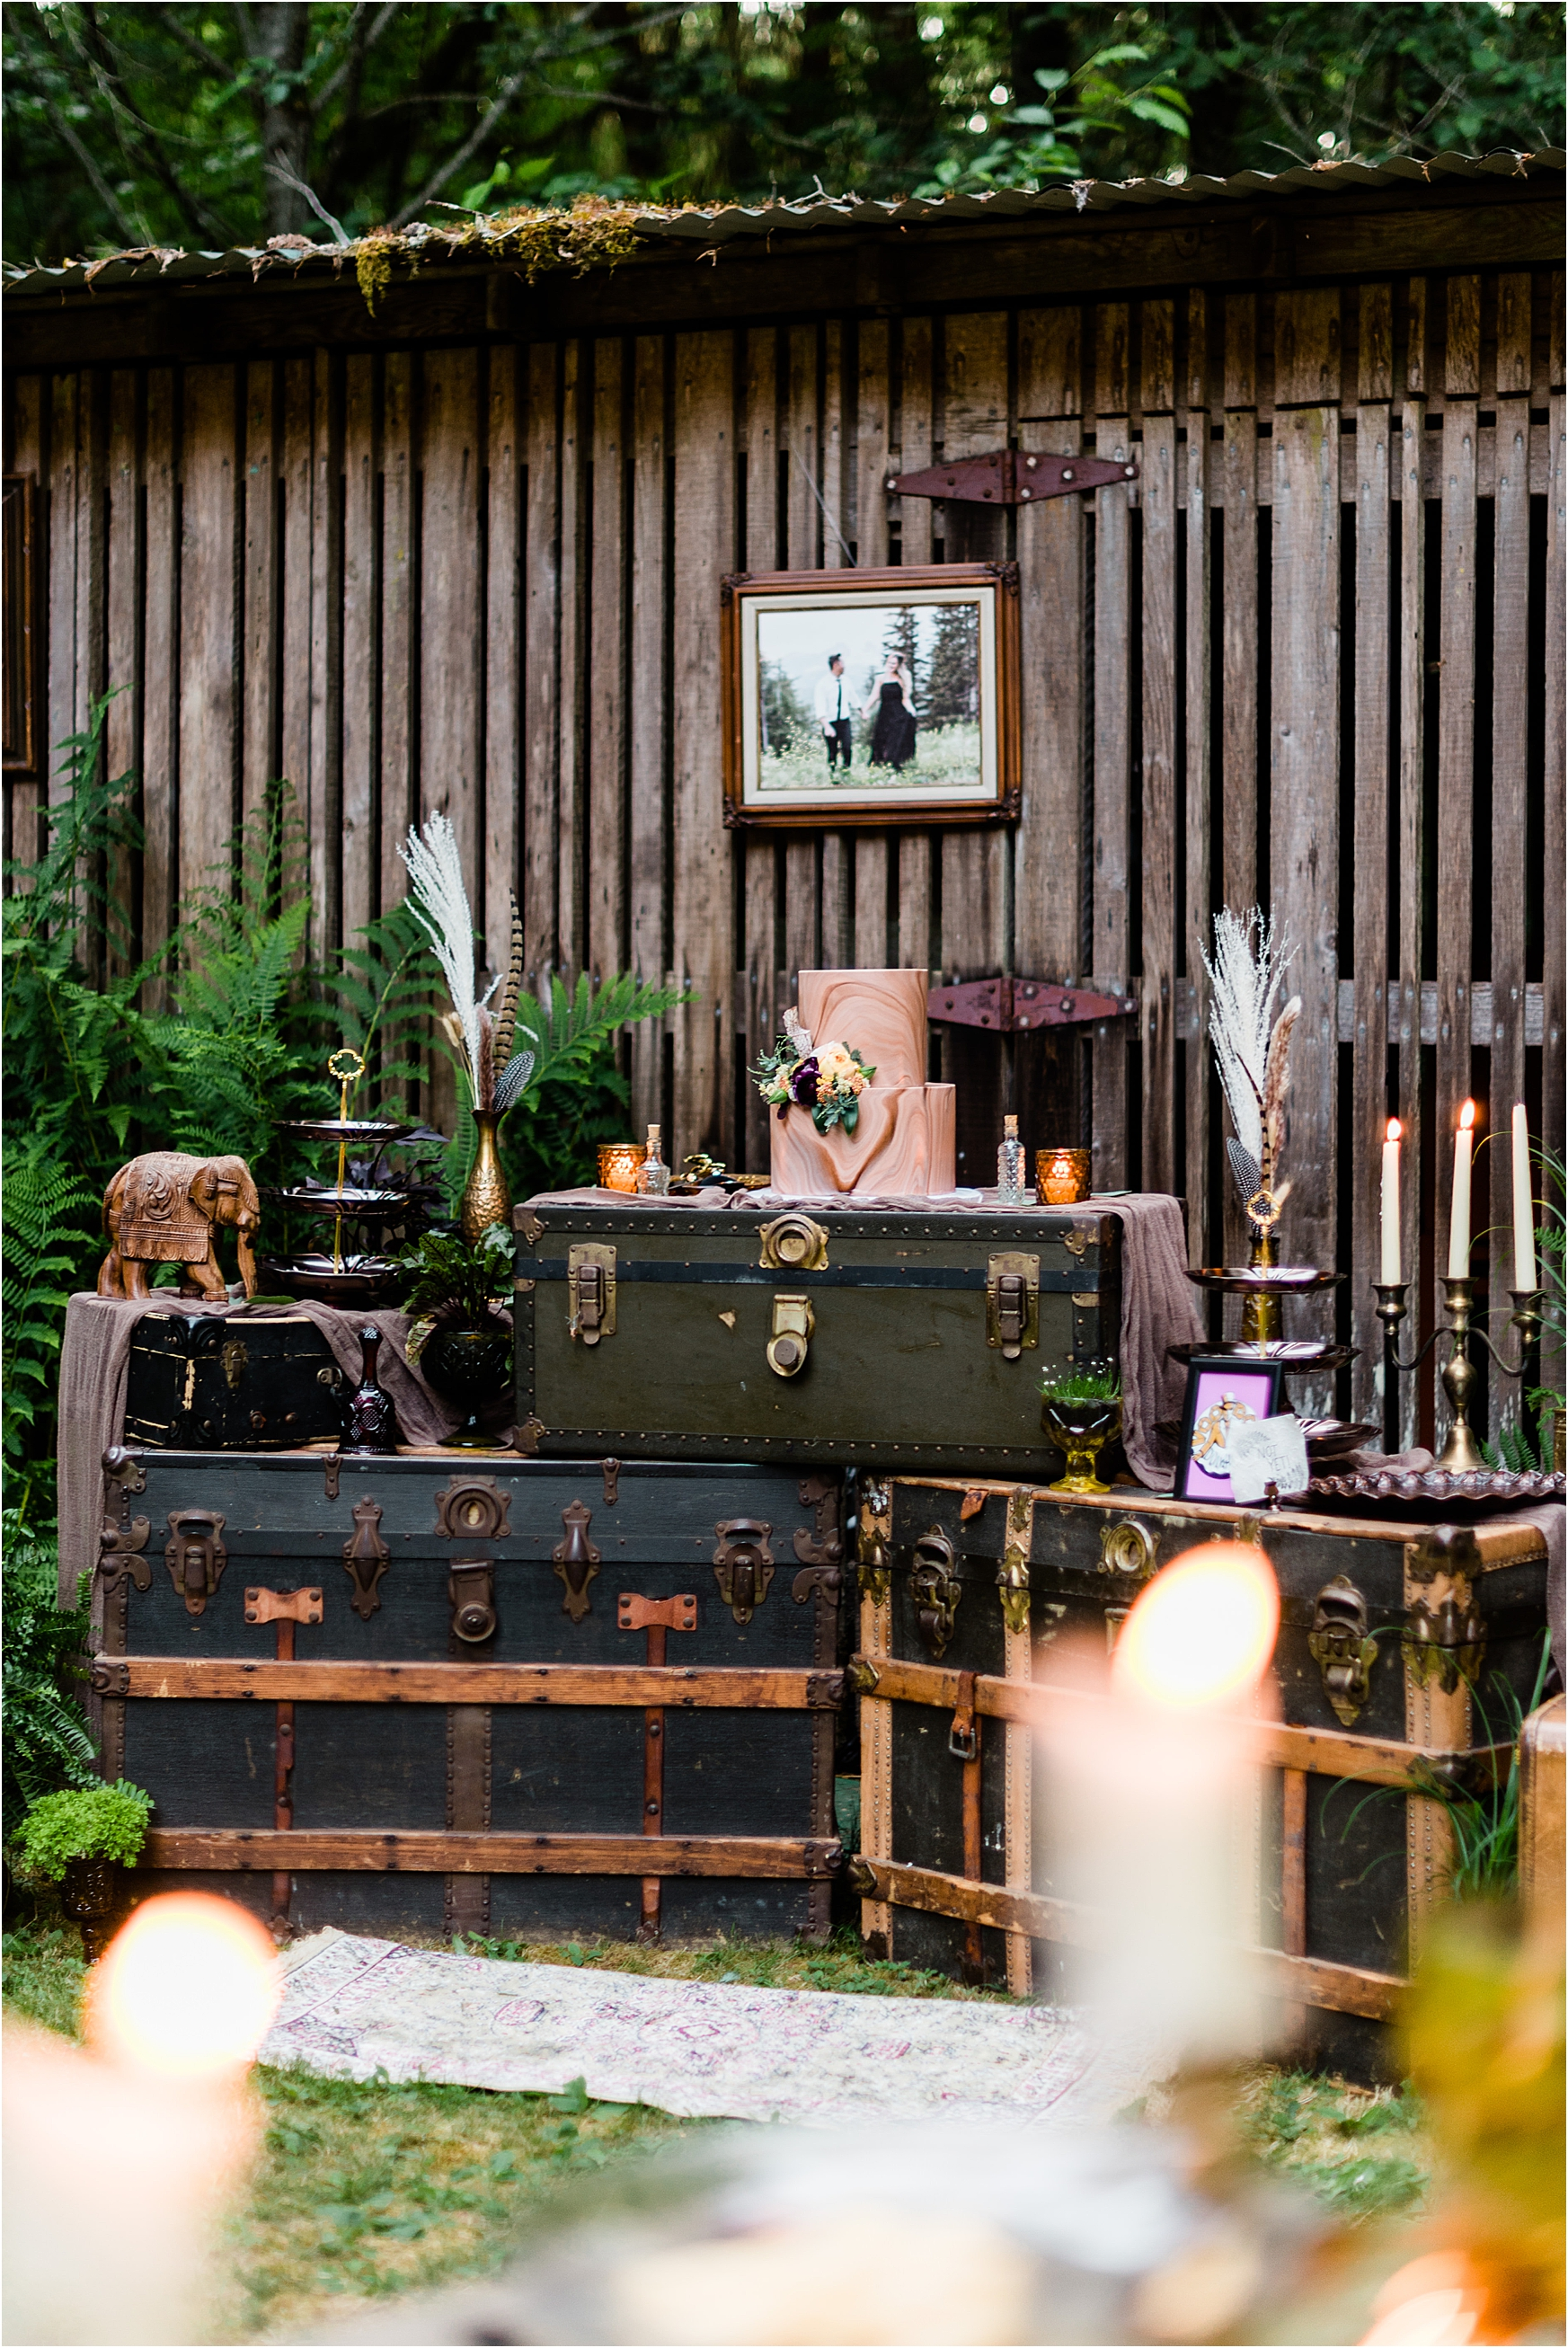 Dessert table decor at Cassy & Viva's bohemian Oregon destination wedding at Camp Lane. Image by Forthright Photo.